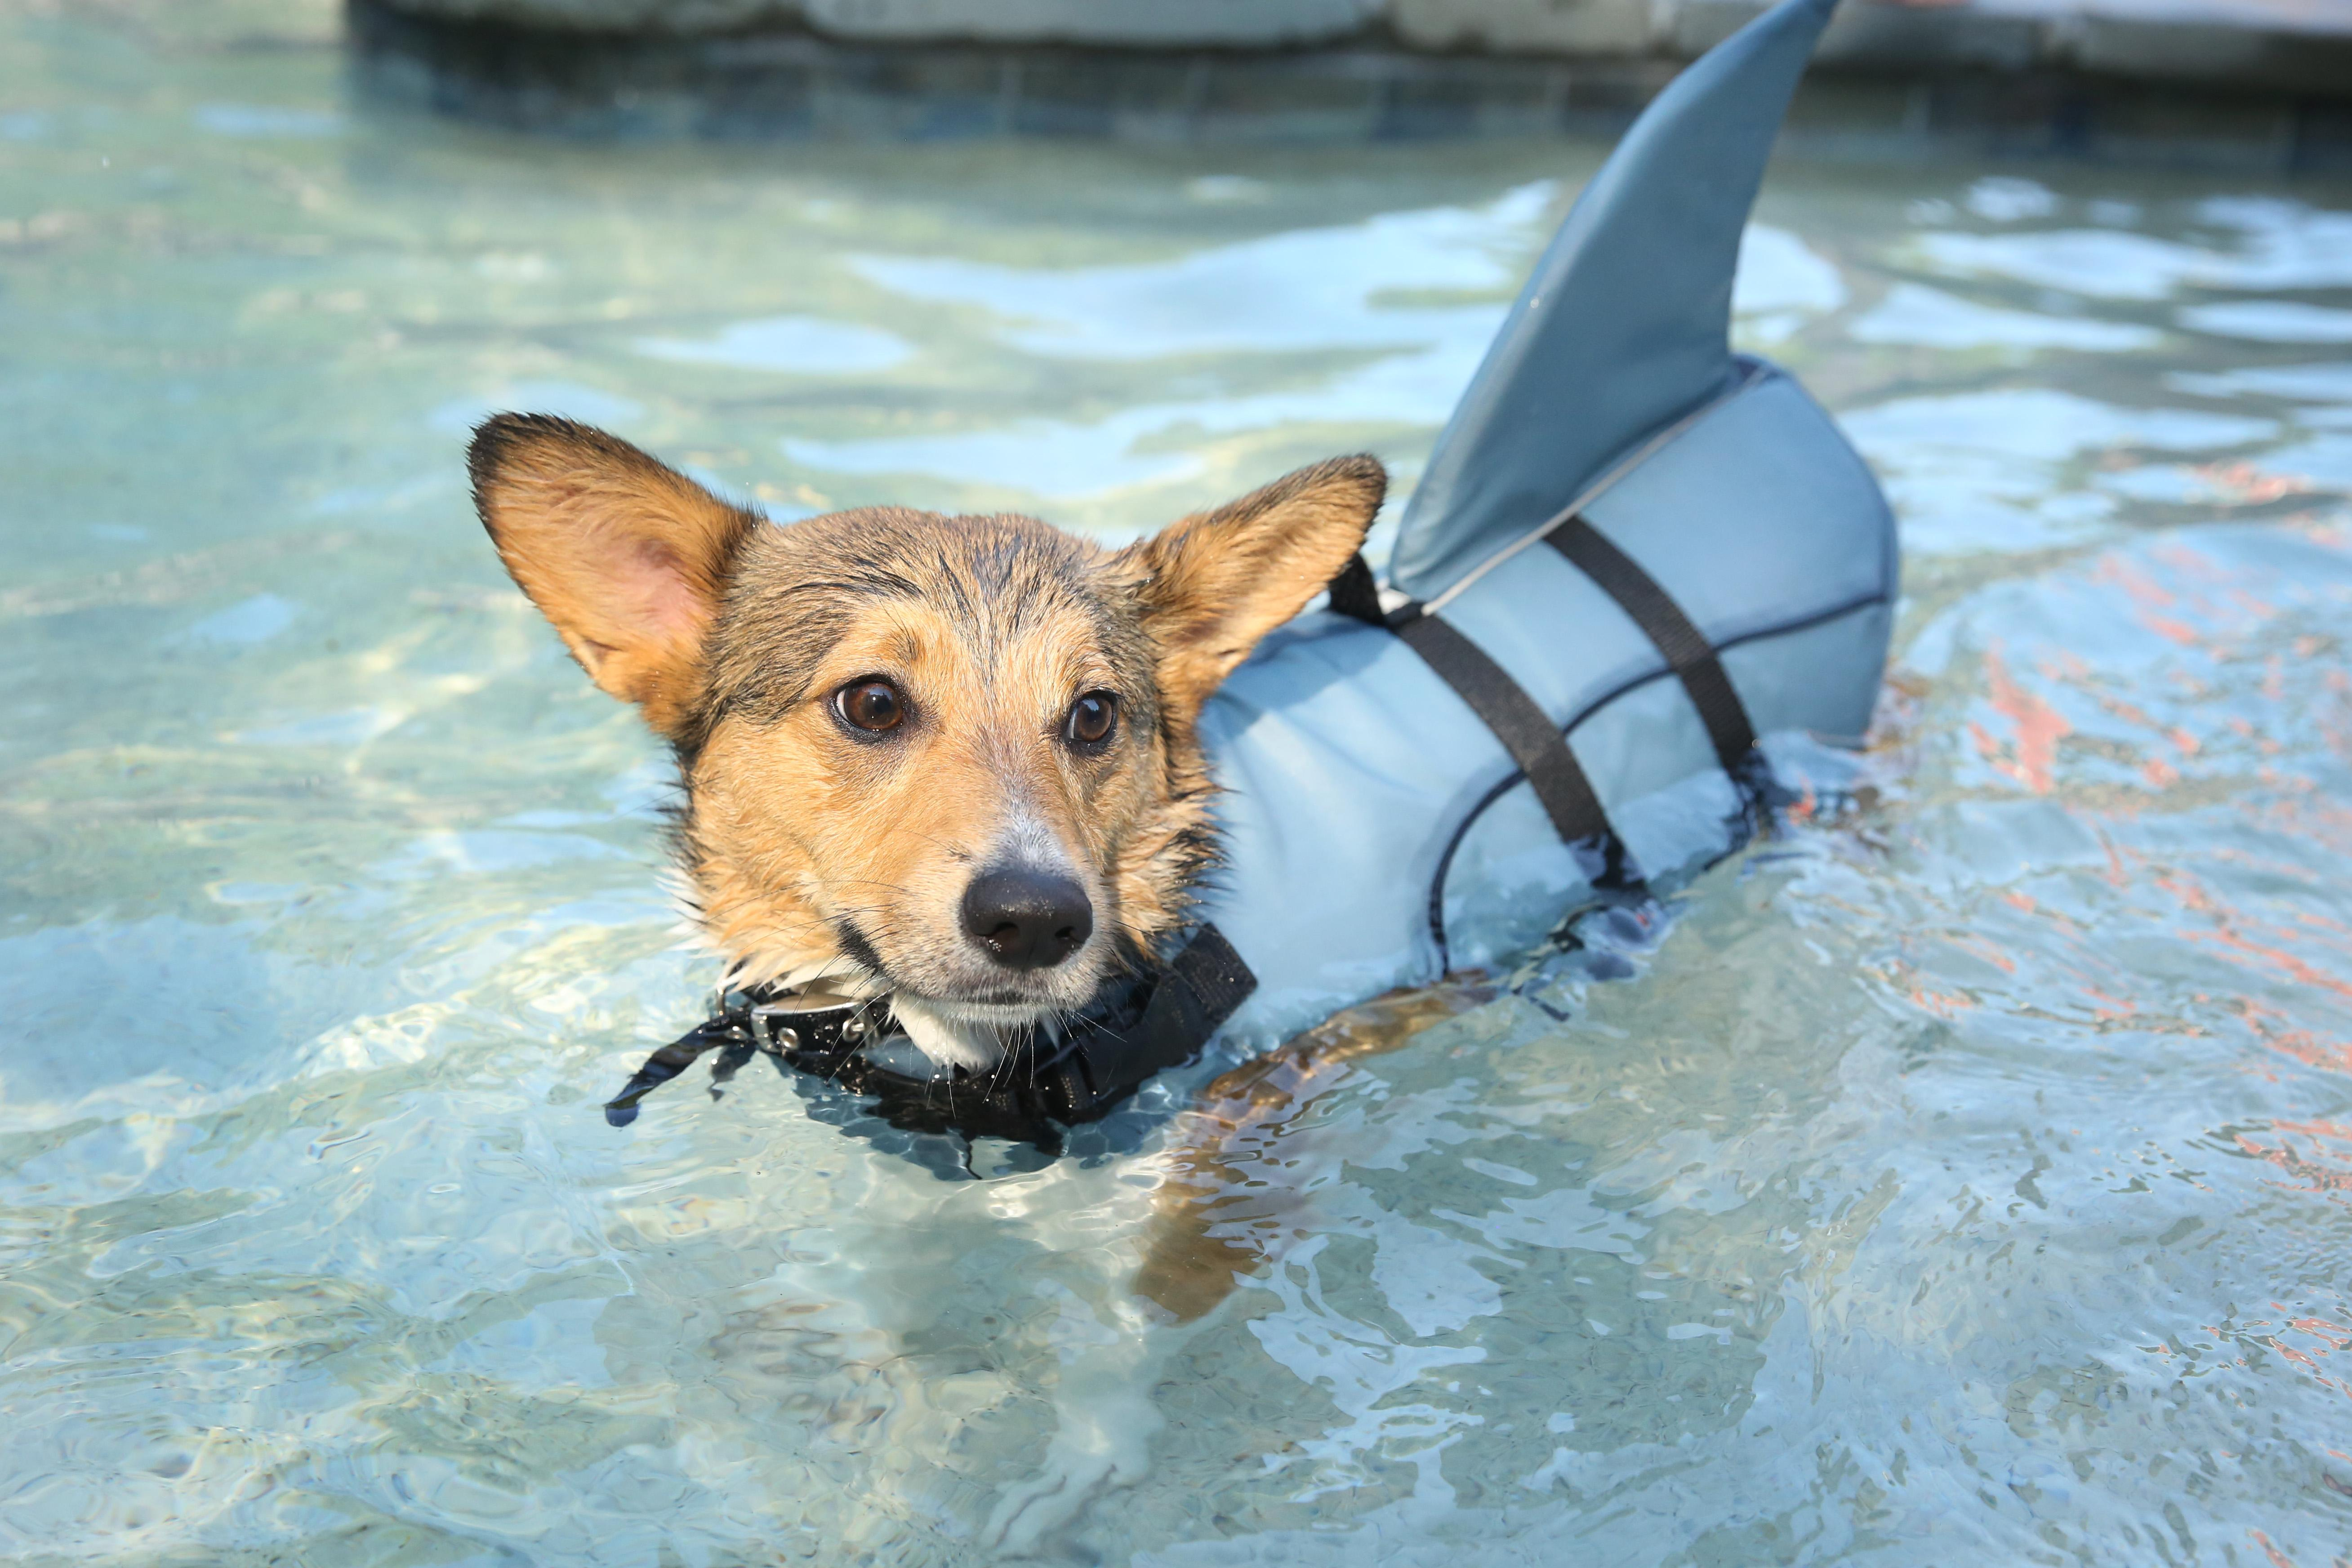 We all need a midweek pick-me-up now and then and there's no better solution to the doldrums than corgis. Here's a collection of some of our favorite stumpy-legged RUFFined stars and other corgis we've photographed. (Amanda Andrade-Rhoades/DC Refined)